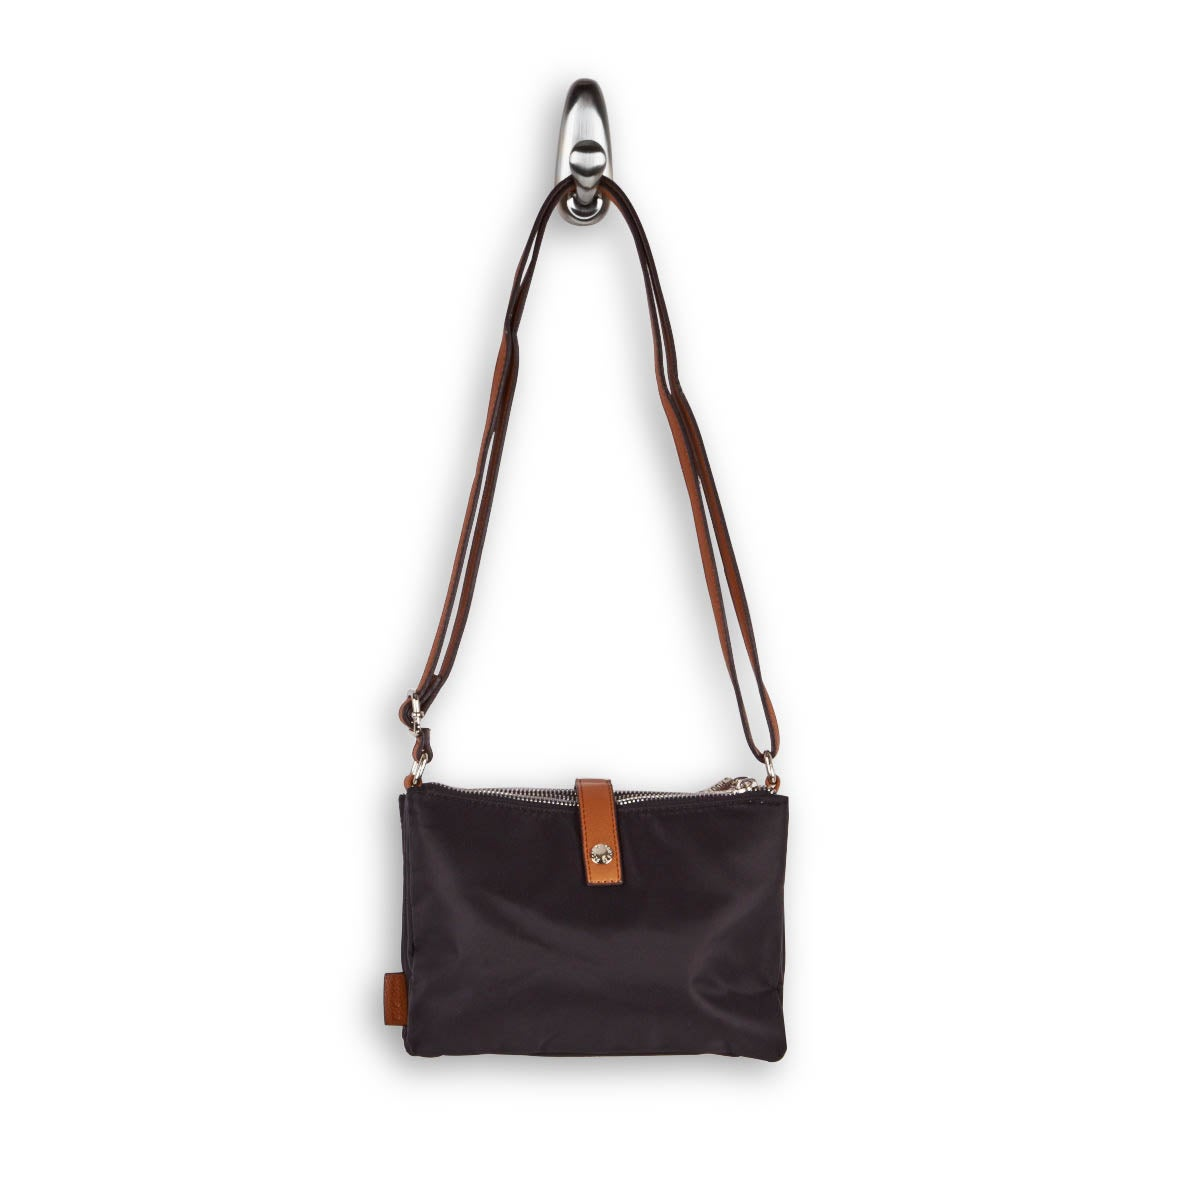 Lds black 3 top zip crossbody bag